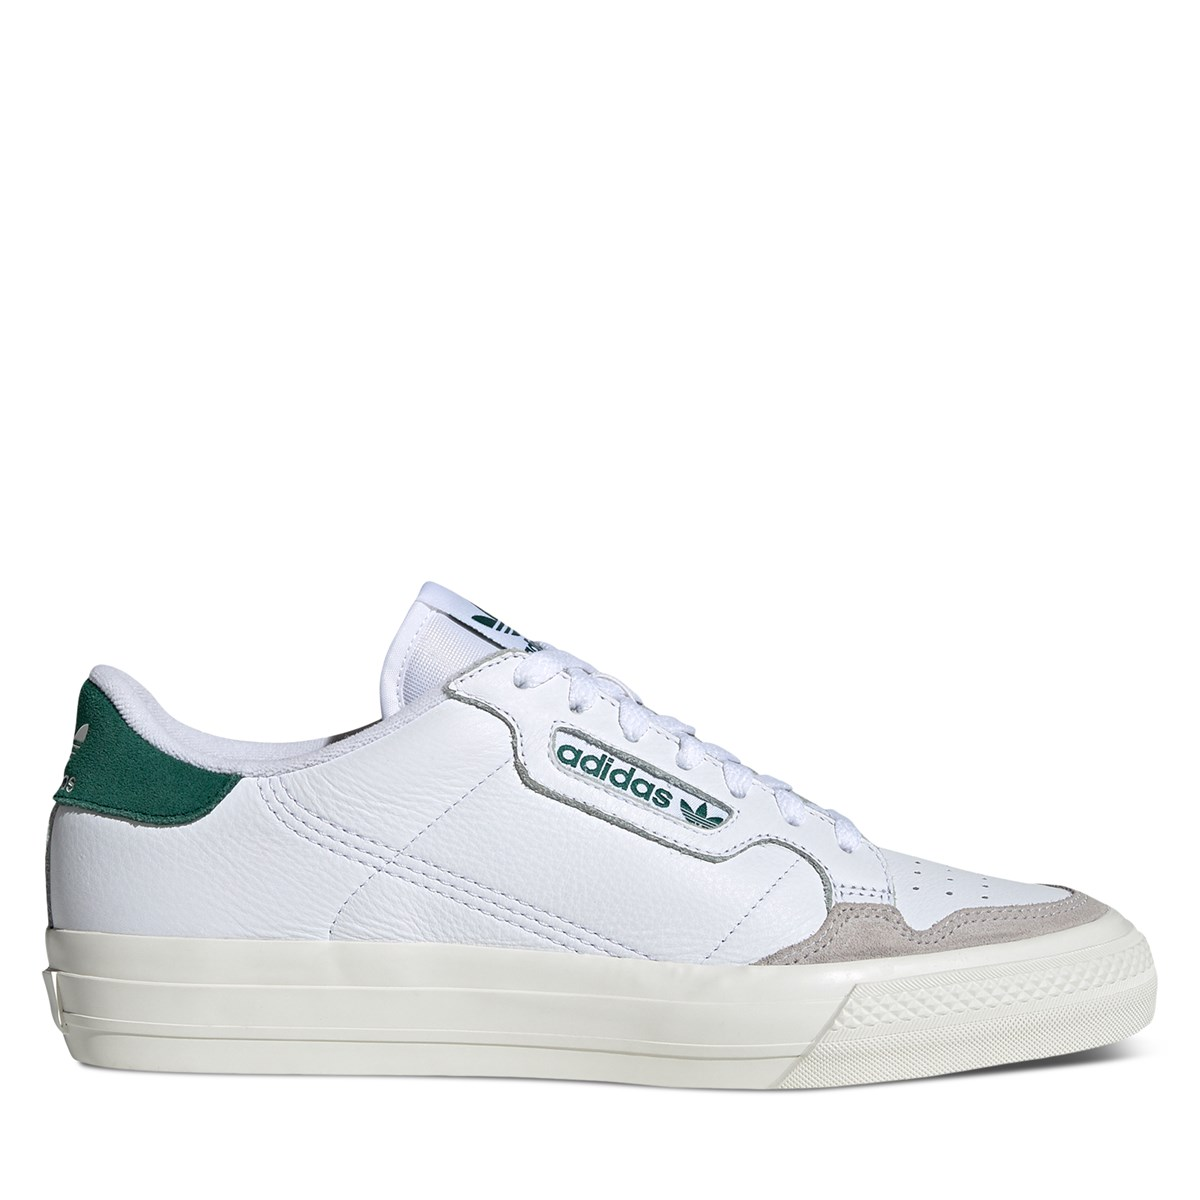 Men's Continental Vulc Sneakers in White